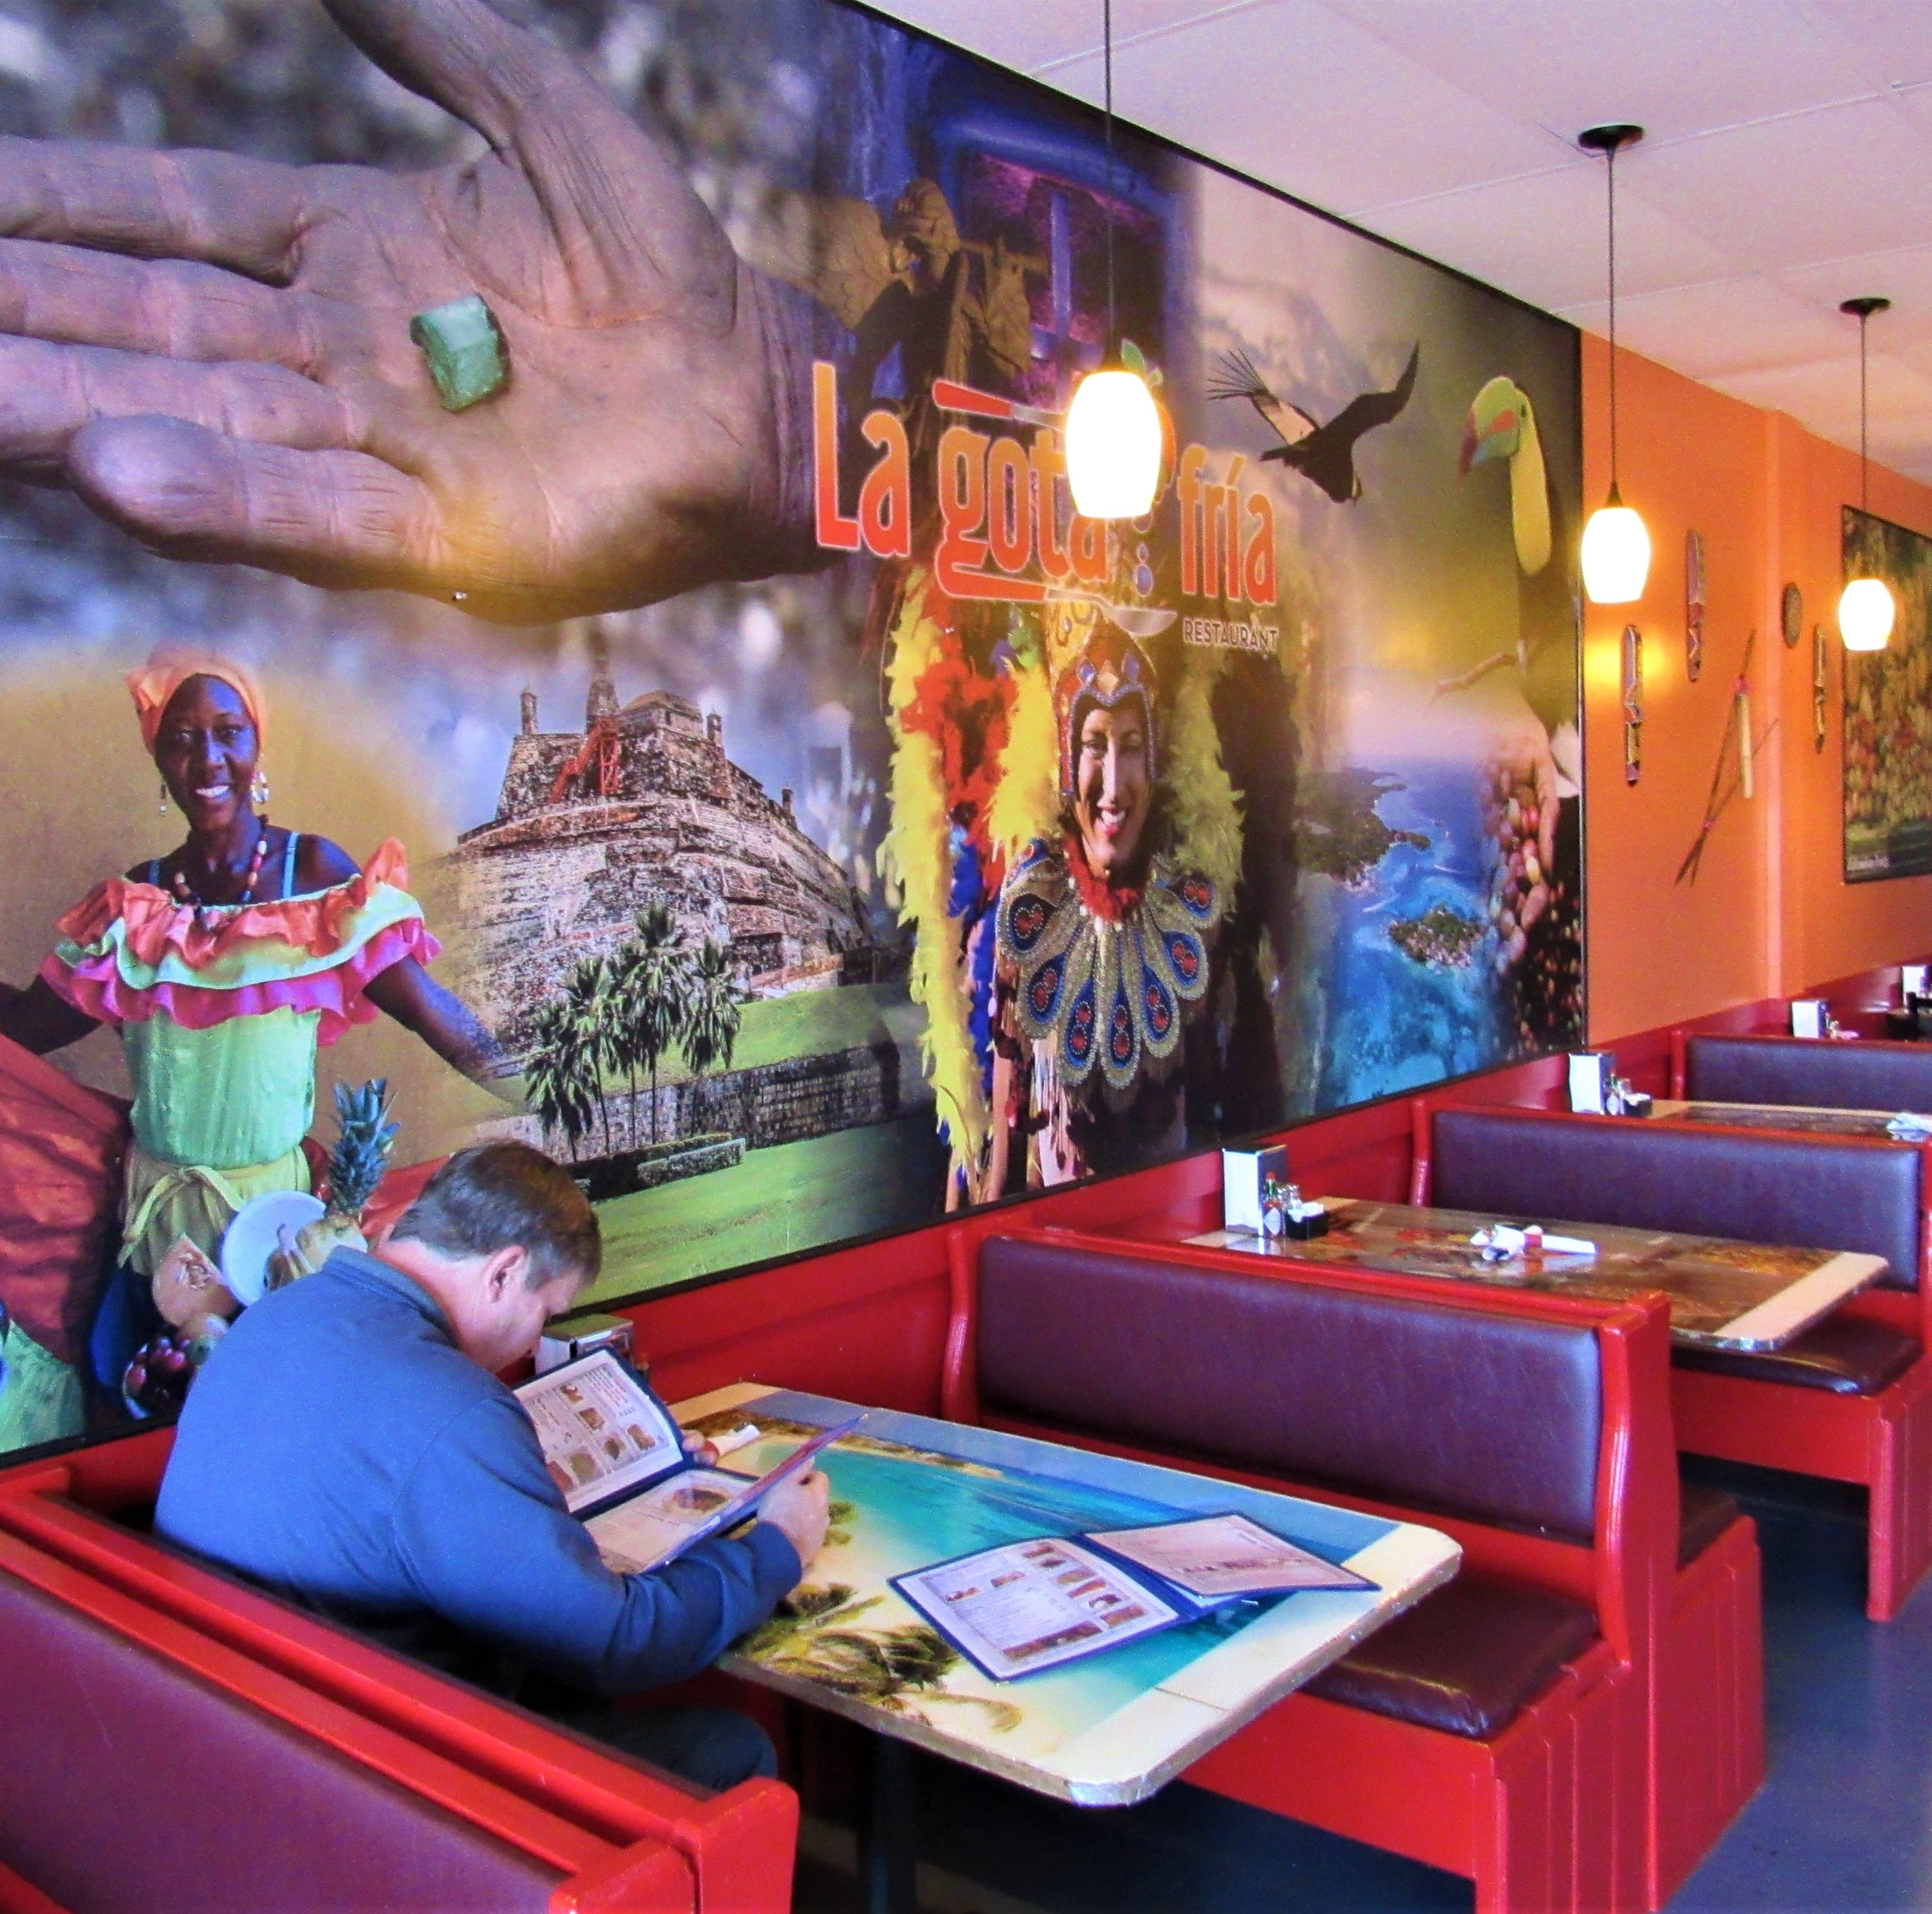 La Gota Fria brings authentic taste of Colombia to West Knoxville